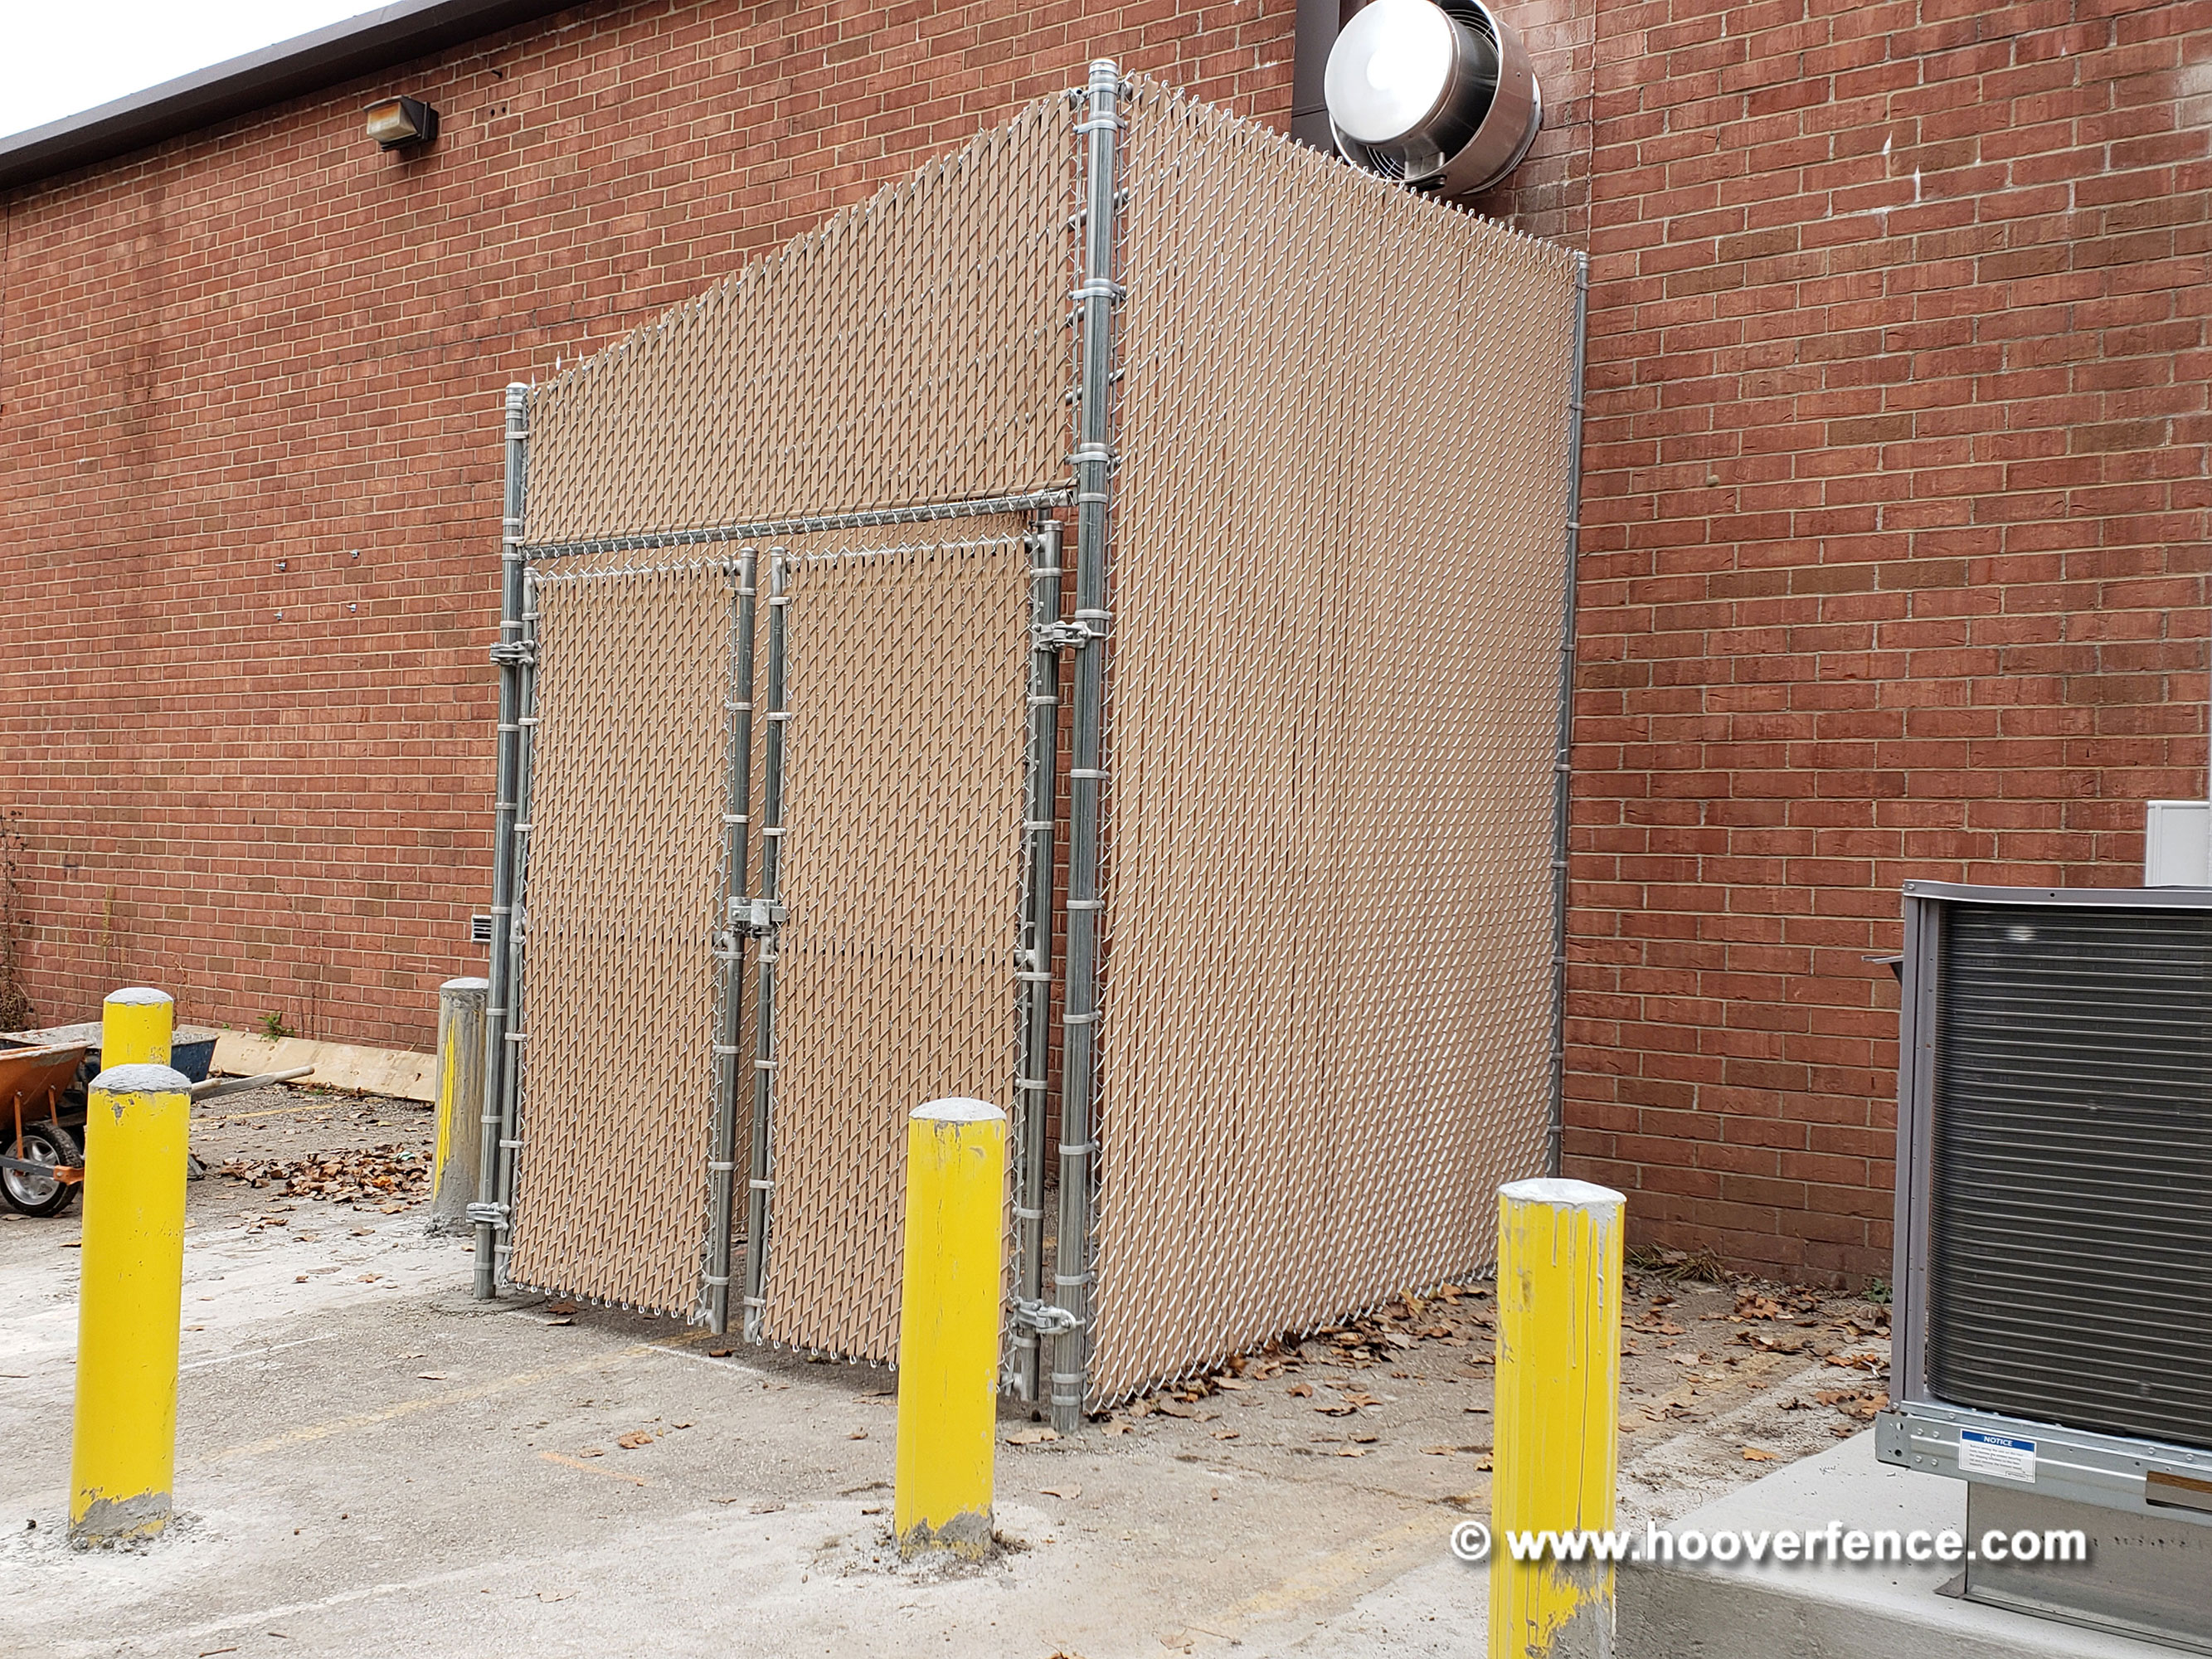 Outdoor Chain Link Fence Security Cage w/ Double Gate and Lock-Top PVC Slats